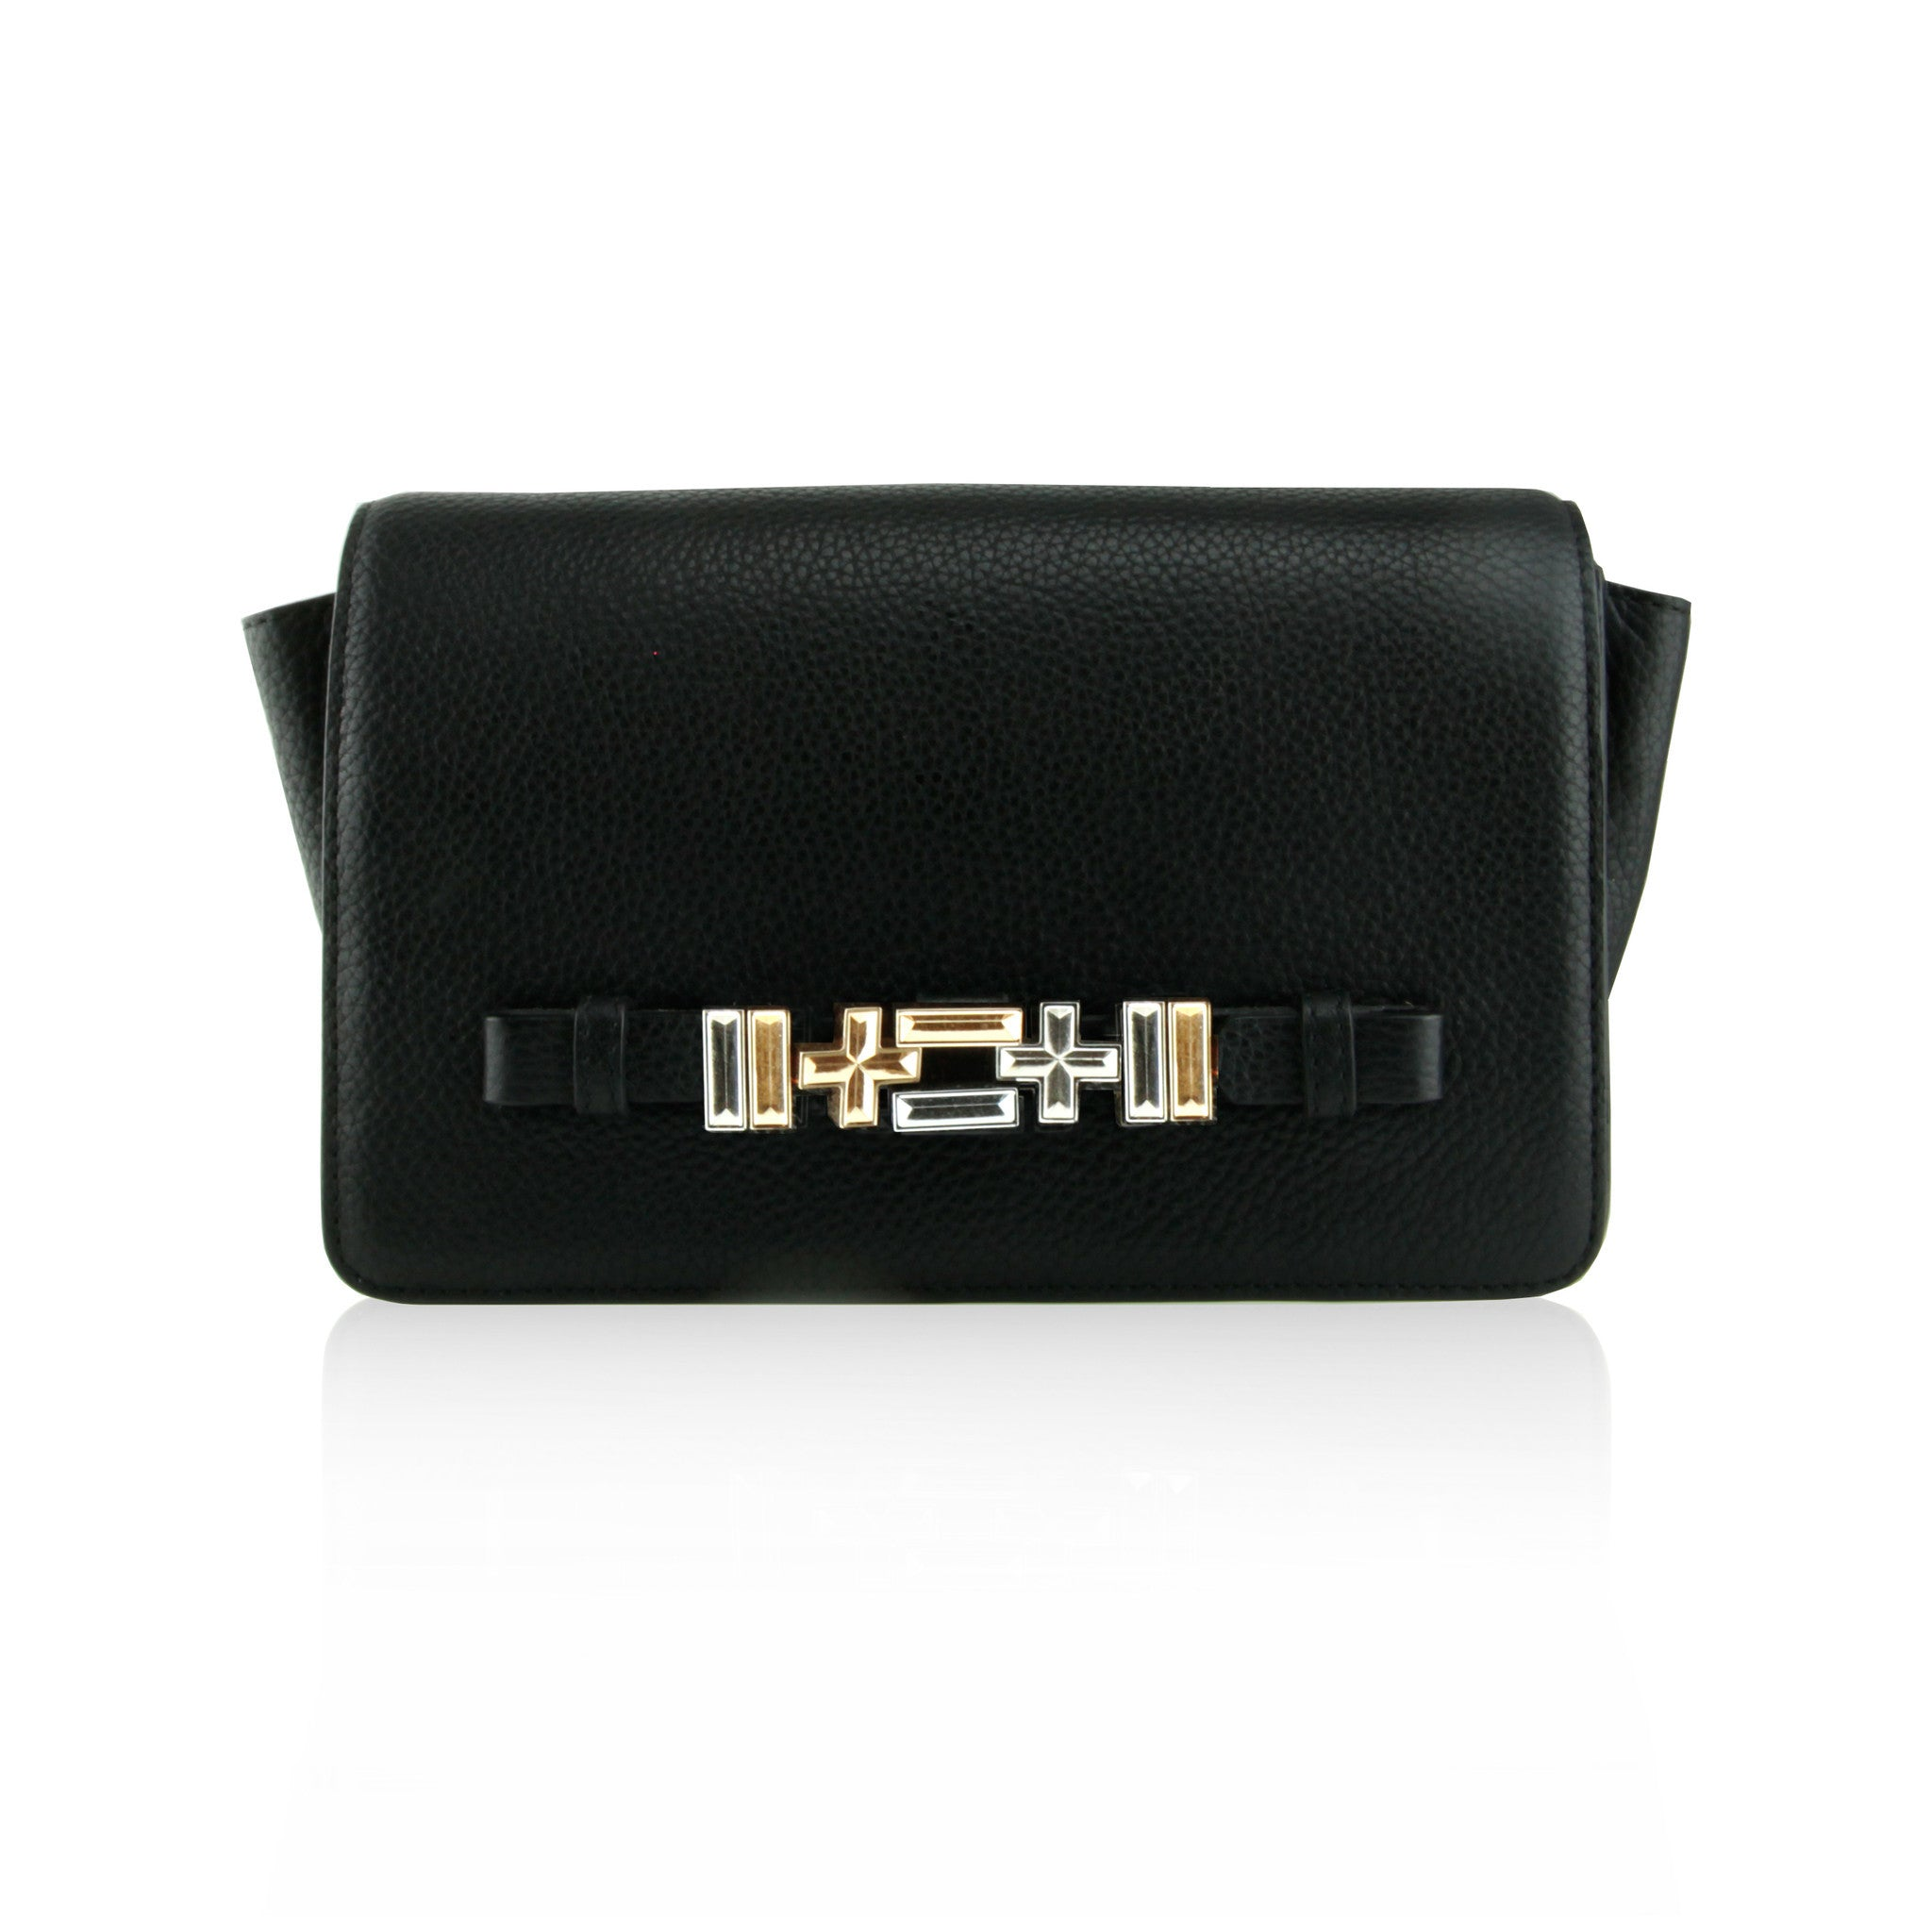 Dylan Kain The sixto shoulder bag/clutch Black